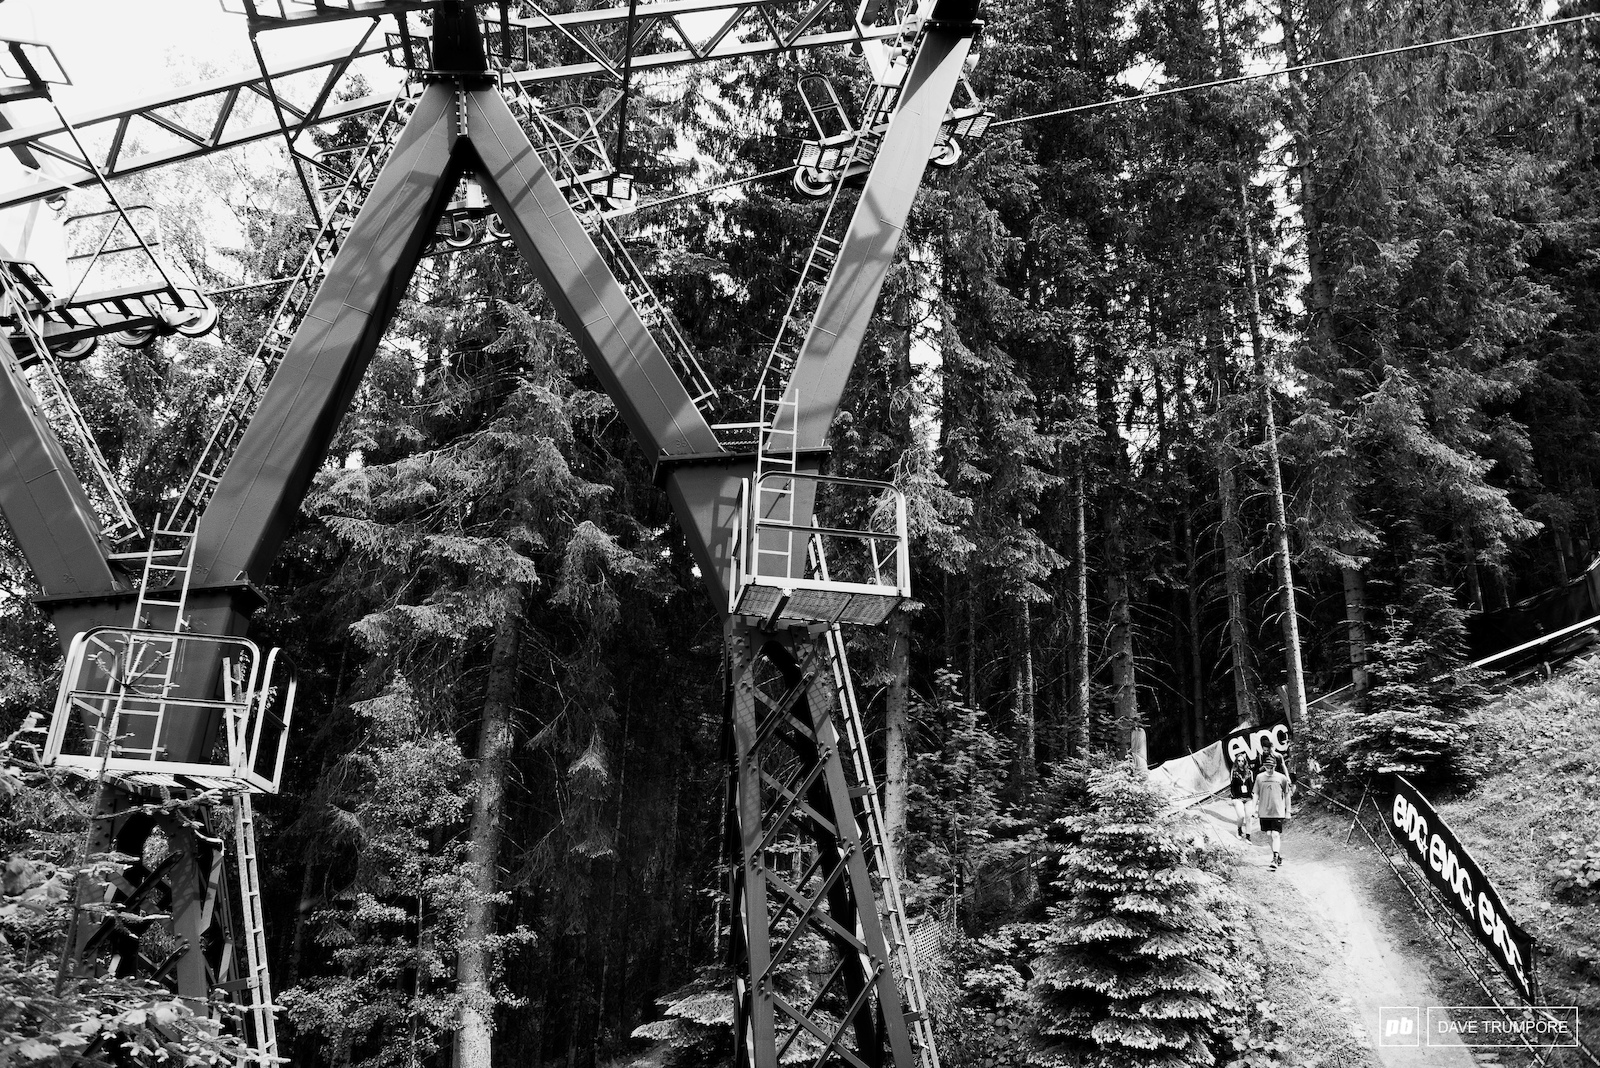 The bottom woods is the only time the track runs under the gondola and the only time riders can survey lines from above during practice.